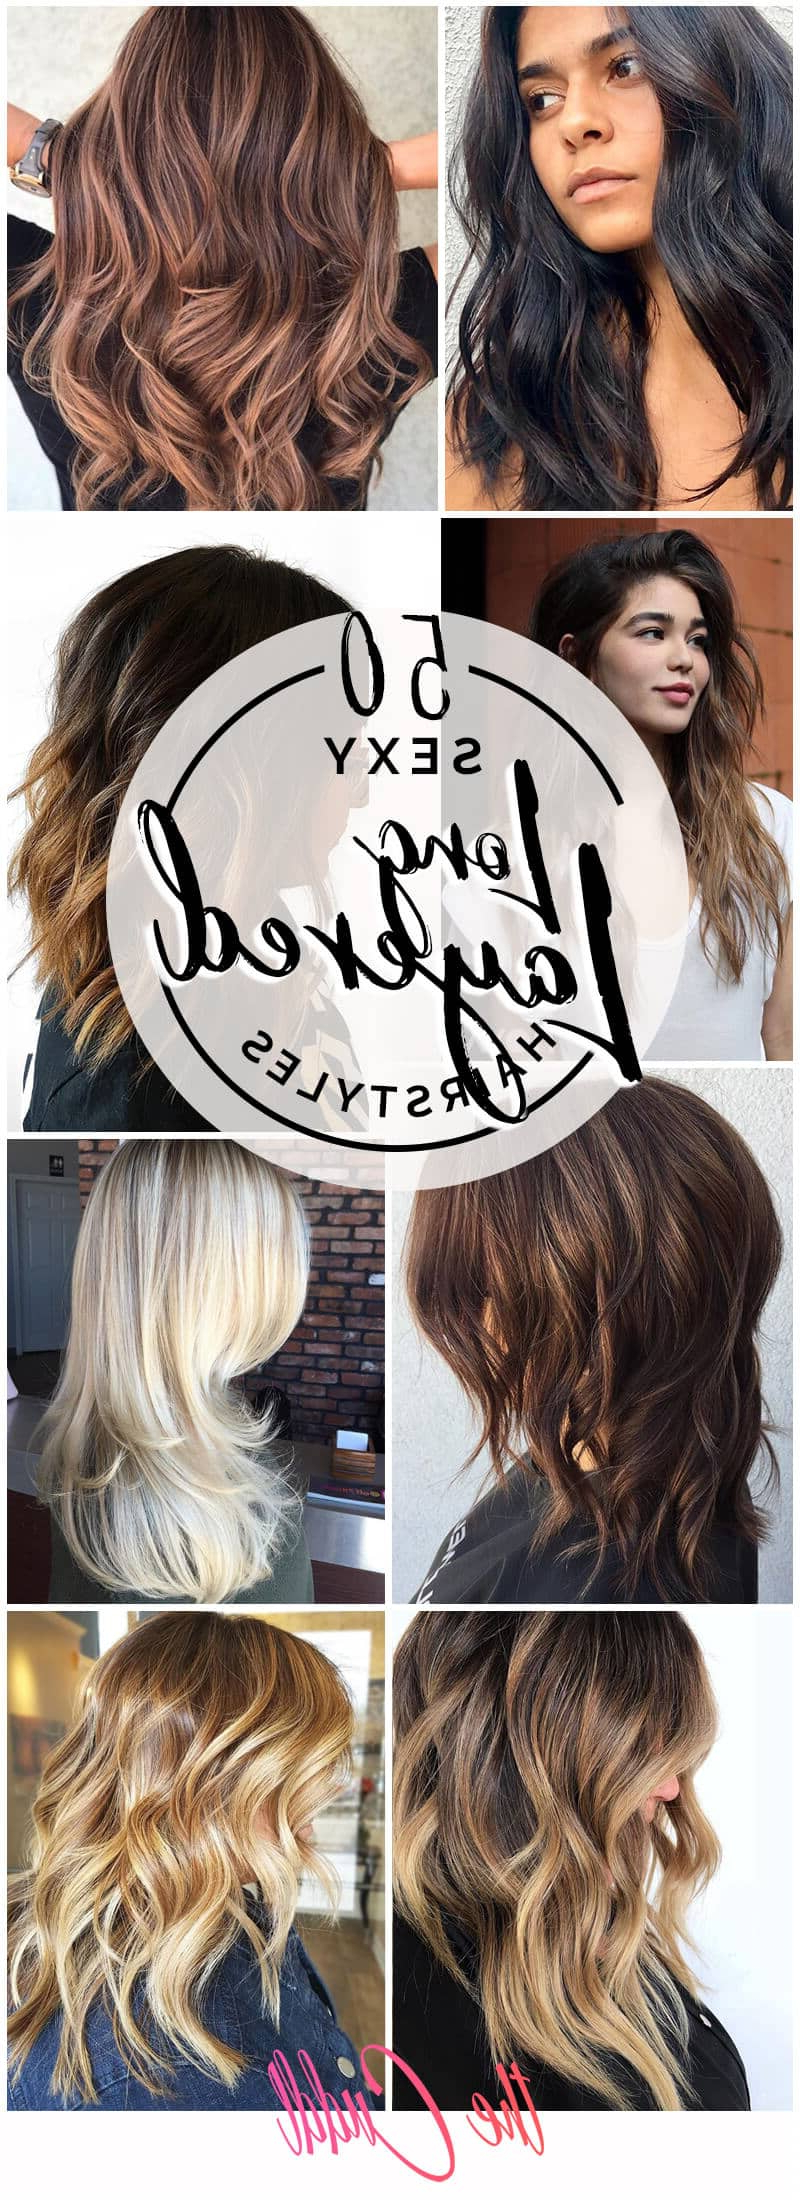 50 Sexy Long Layered Hair Ideas To Create Effortless Style In 2019 With 2019 Mid Back Brown U Shaped Haircuts With Swoopy Layers (View 4 of 20)